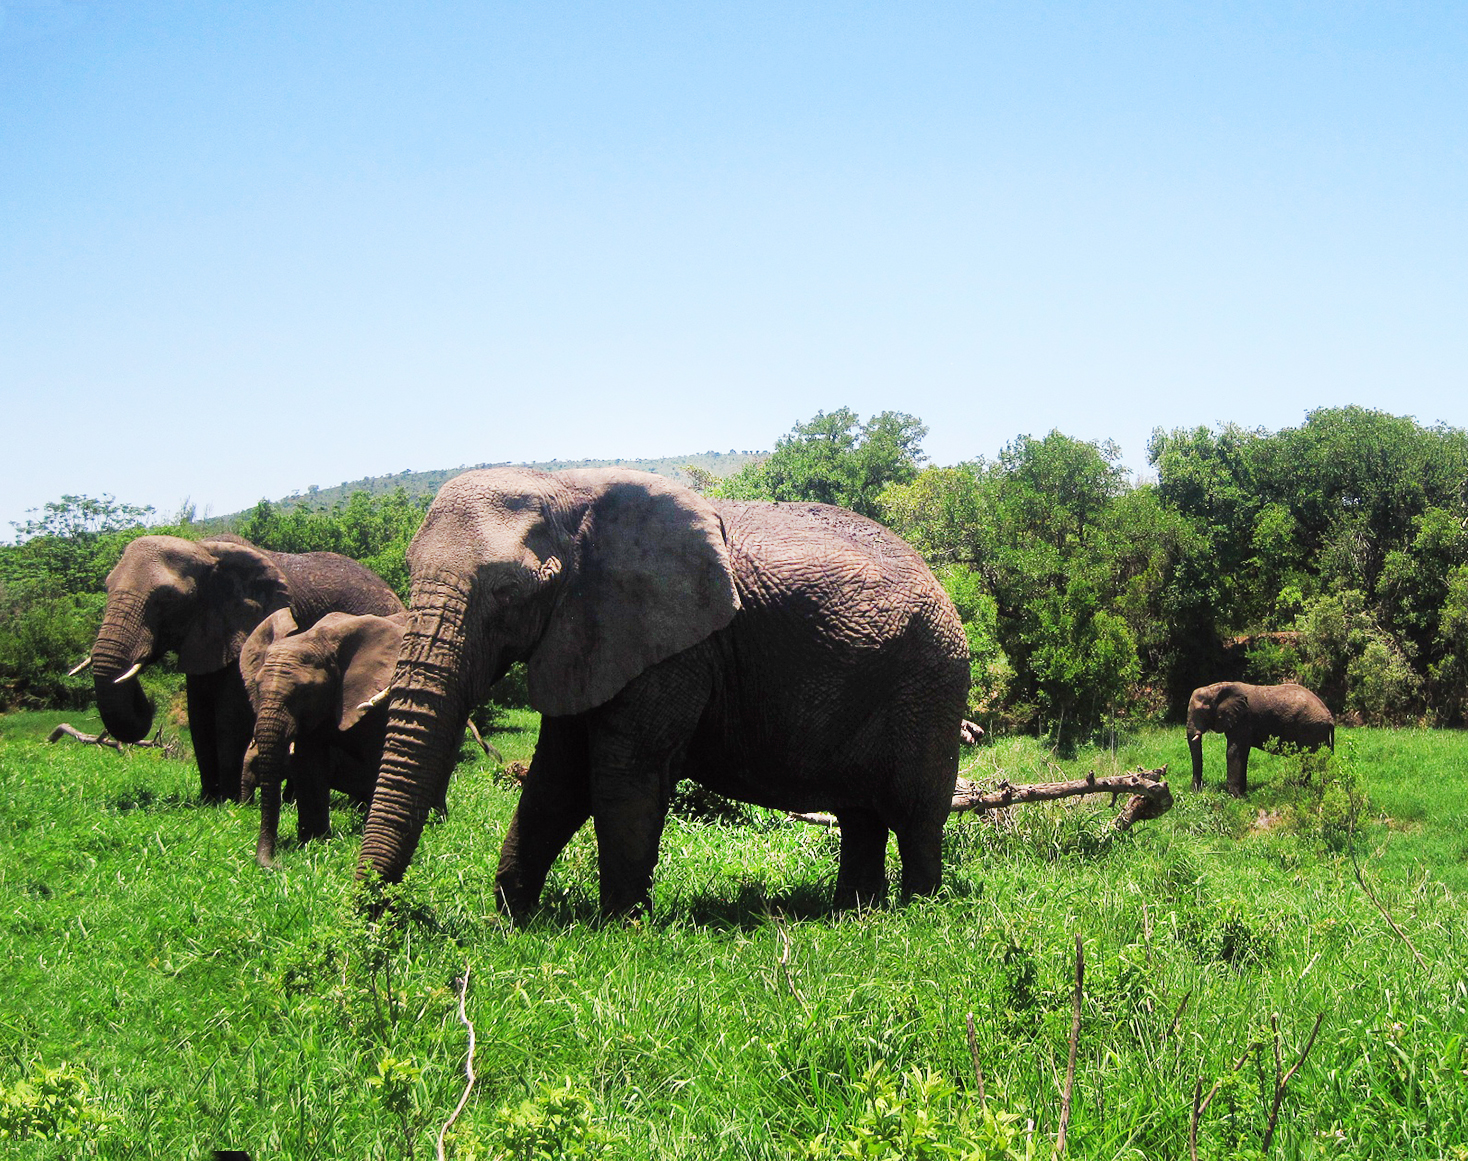 African elephants in nature